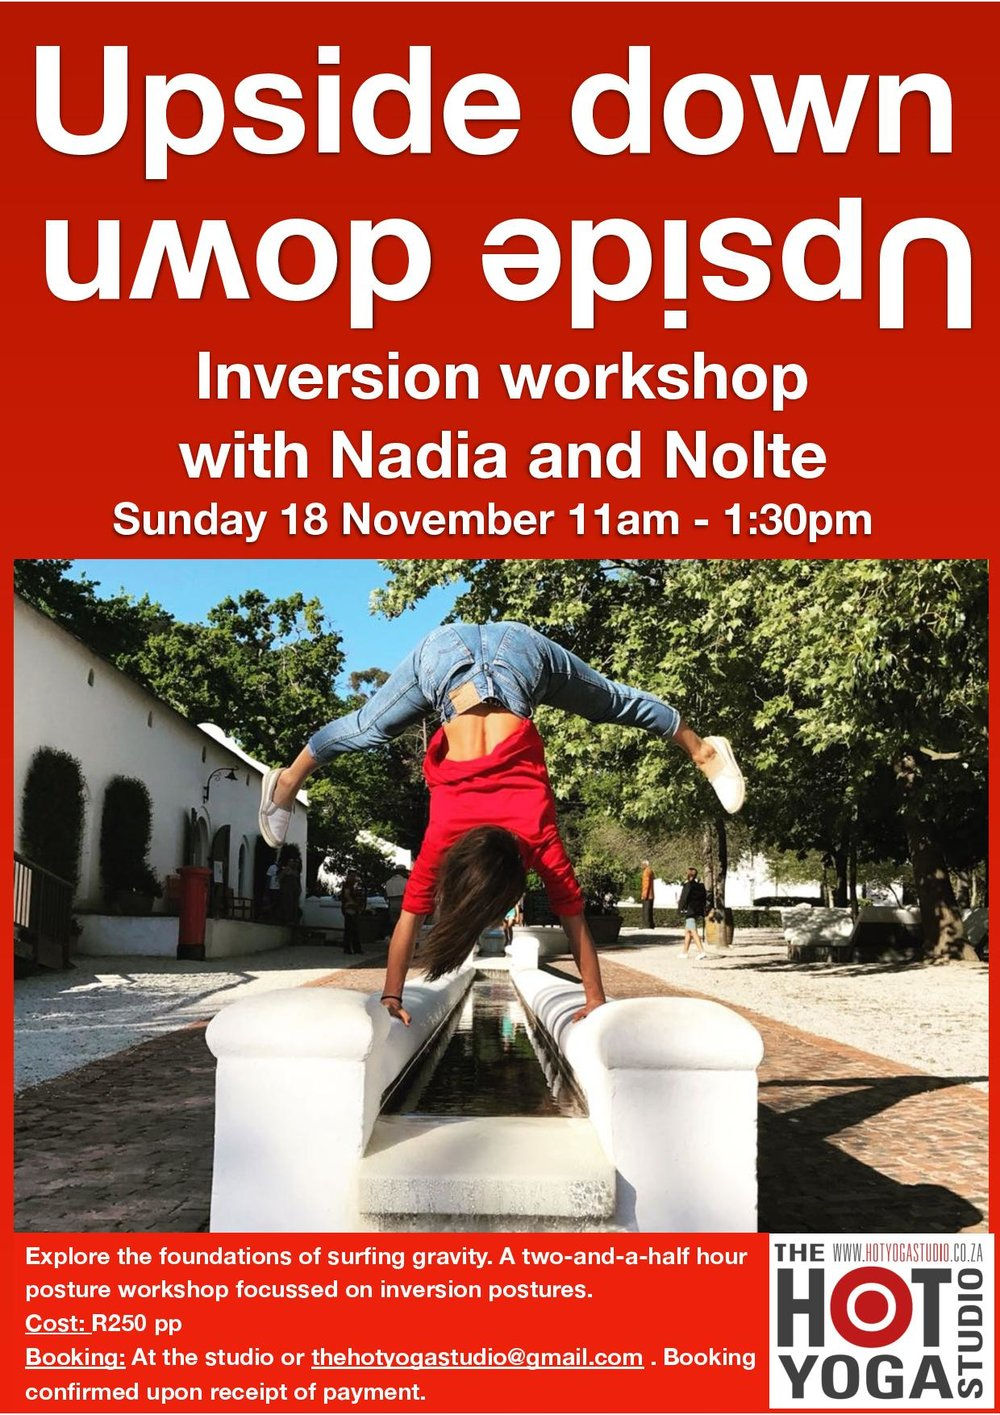 inversion workshop pdf-page-001.jpg